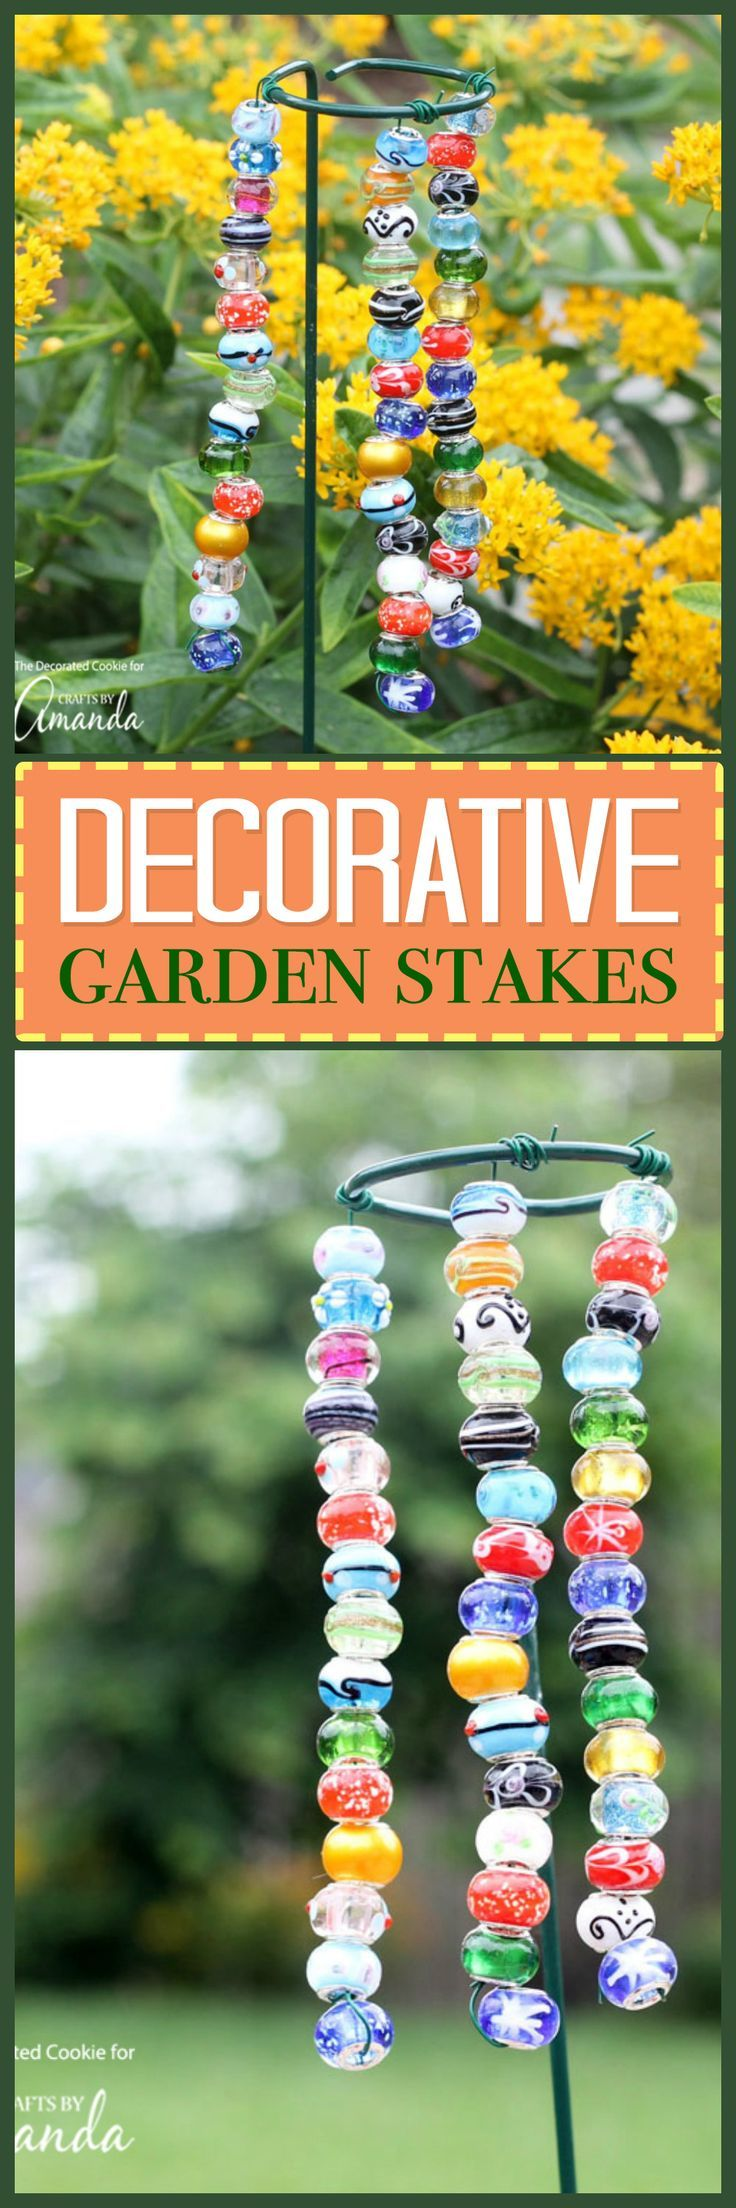 Homemade garden art ideas - Best 25 Garden Art Ideas Only On Pinterest Diy Landscaping Ideas Upcycled Garden And Garden Crafts